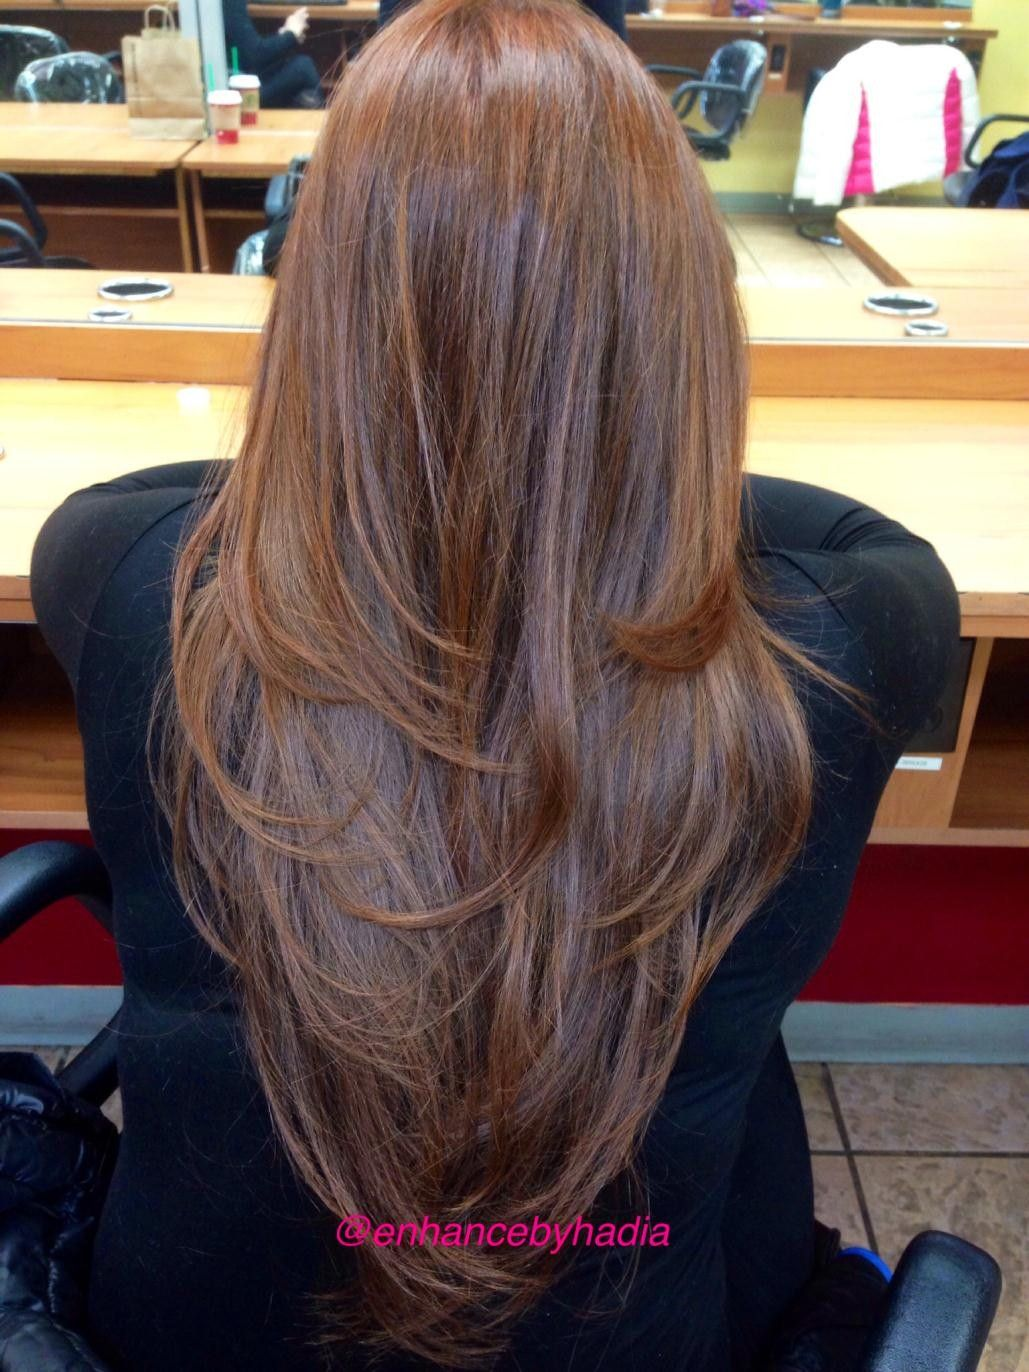 Long Hair With Layers Back View Haircuts Gallery Images Hair Styles Long Hair Styles Long Layered Hair